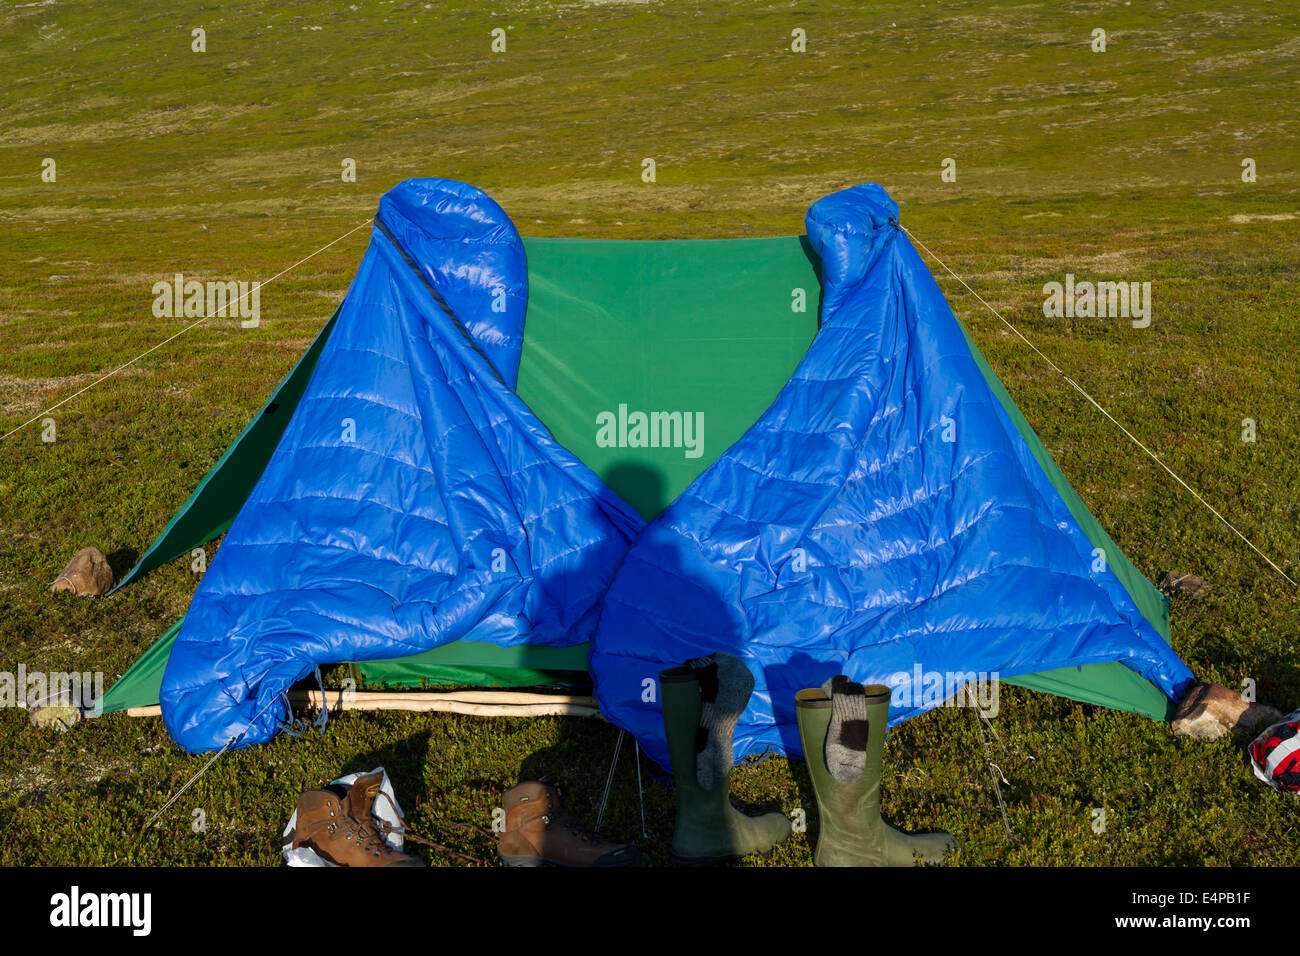 Shadow from a trekker on his tent with two sleeping bags hanging up to dry in the morning sun - Stock Image